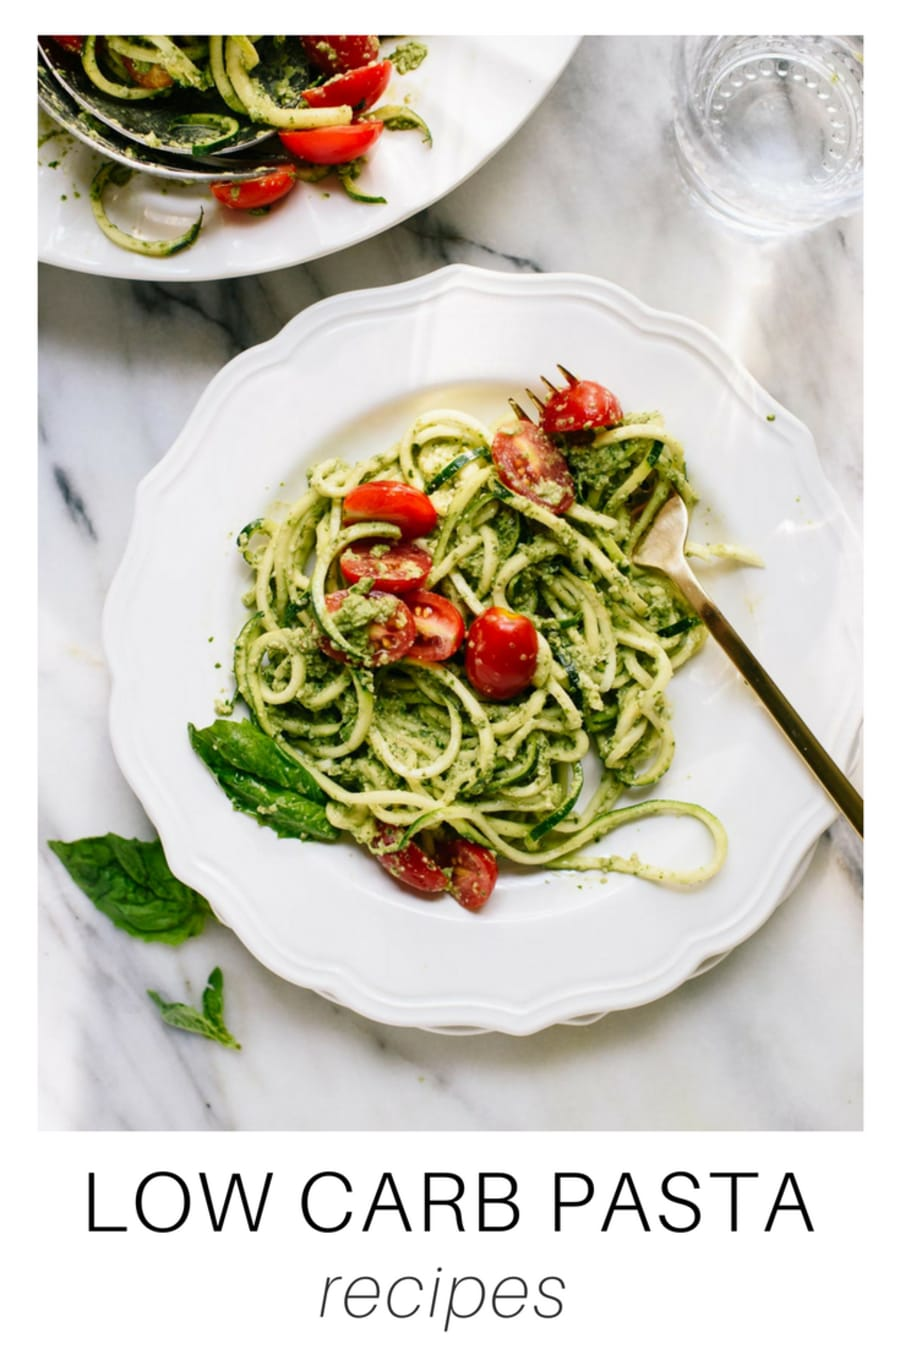 6 delicious low carb 39 pasta 39 recipes huffpost australia. Black Bedroom Furniture Sets. Home Design Ideas